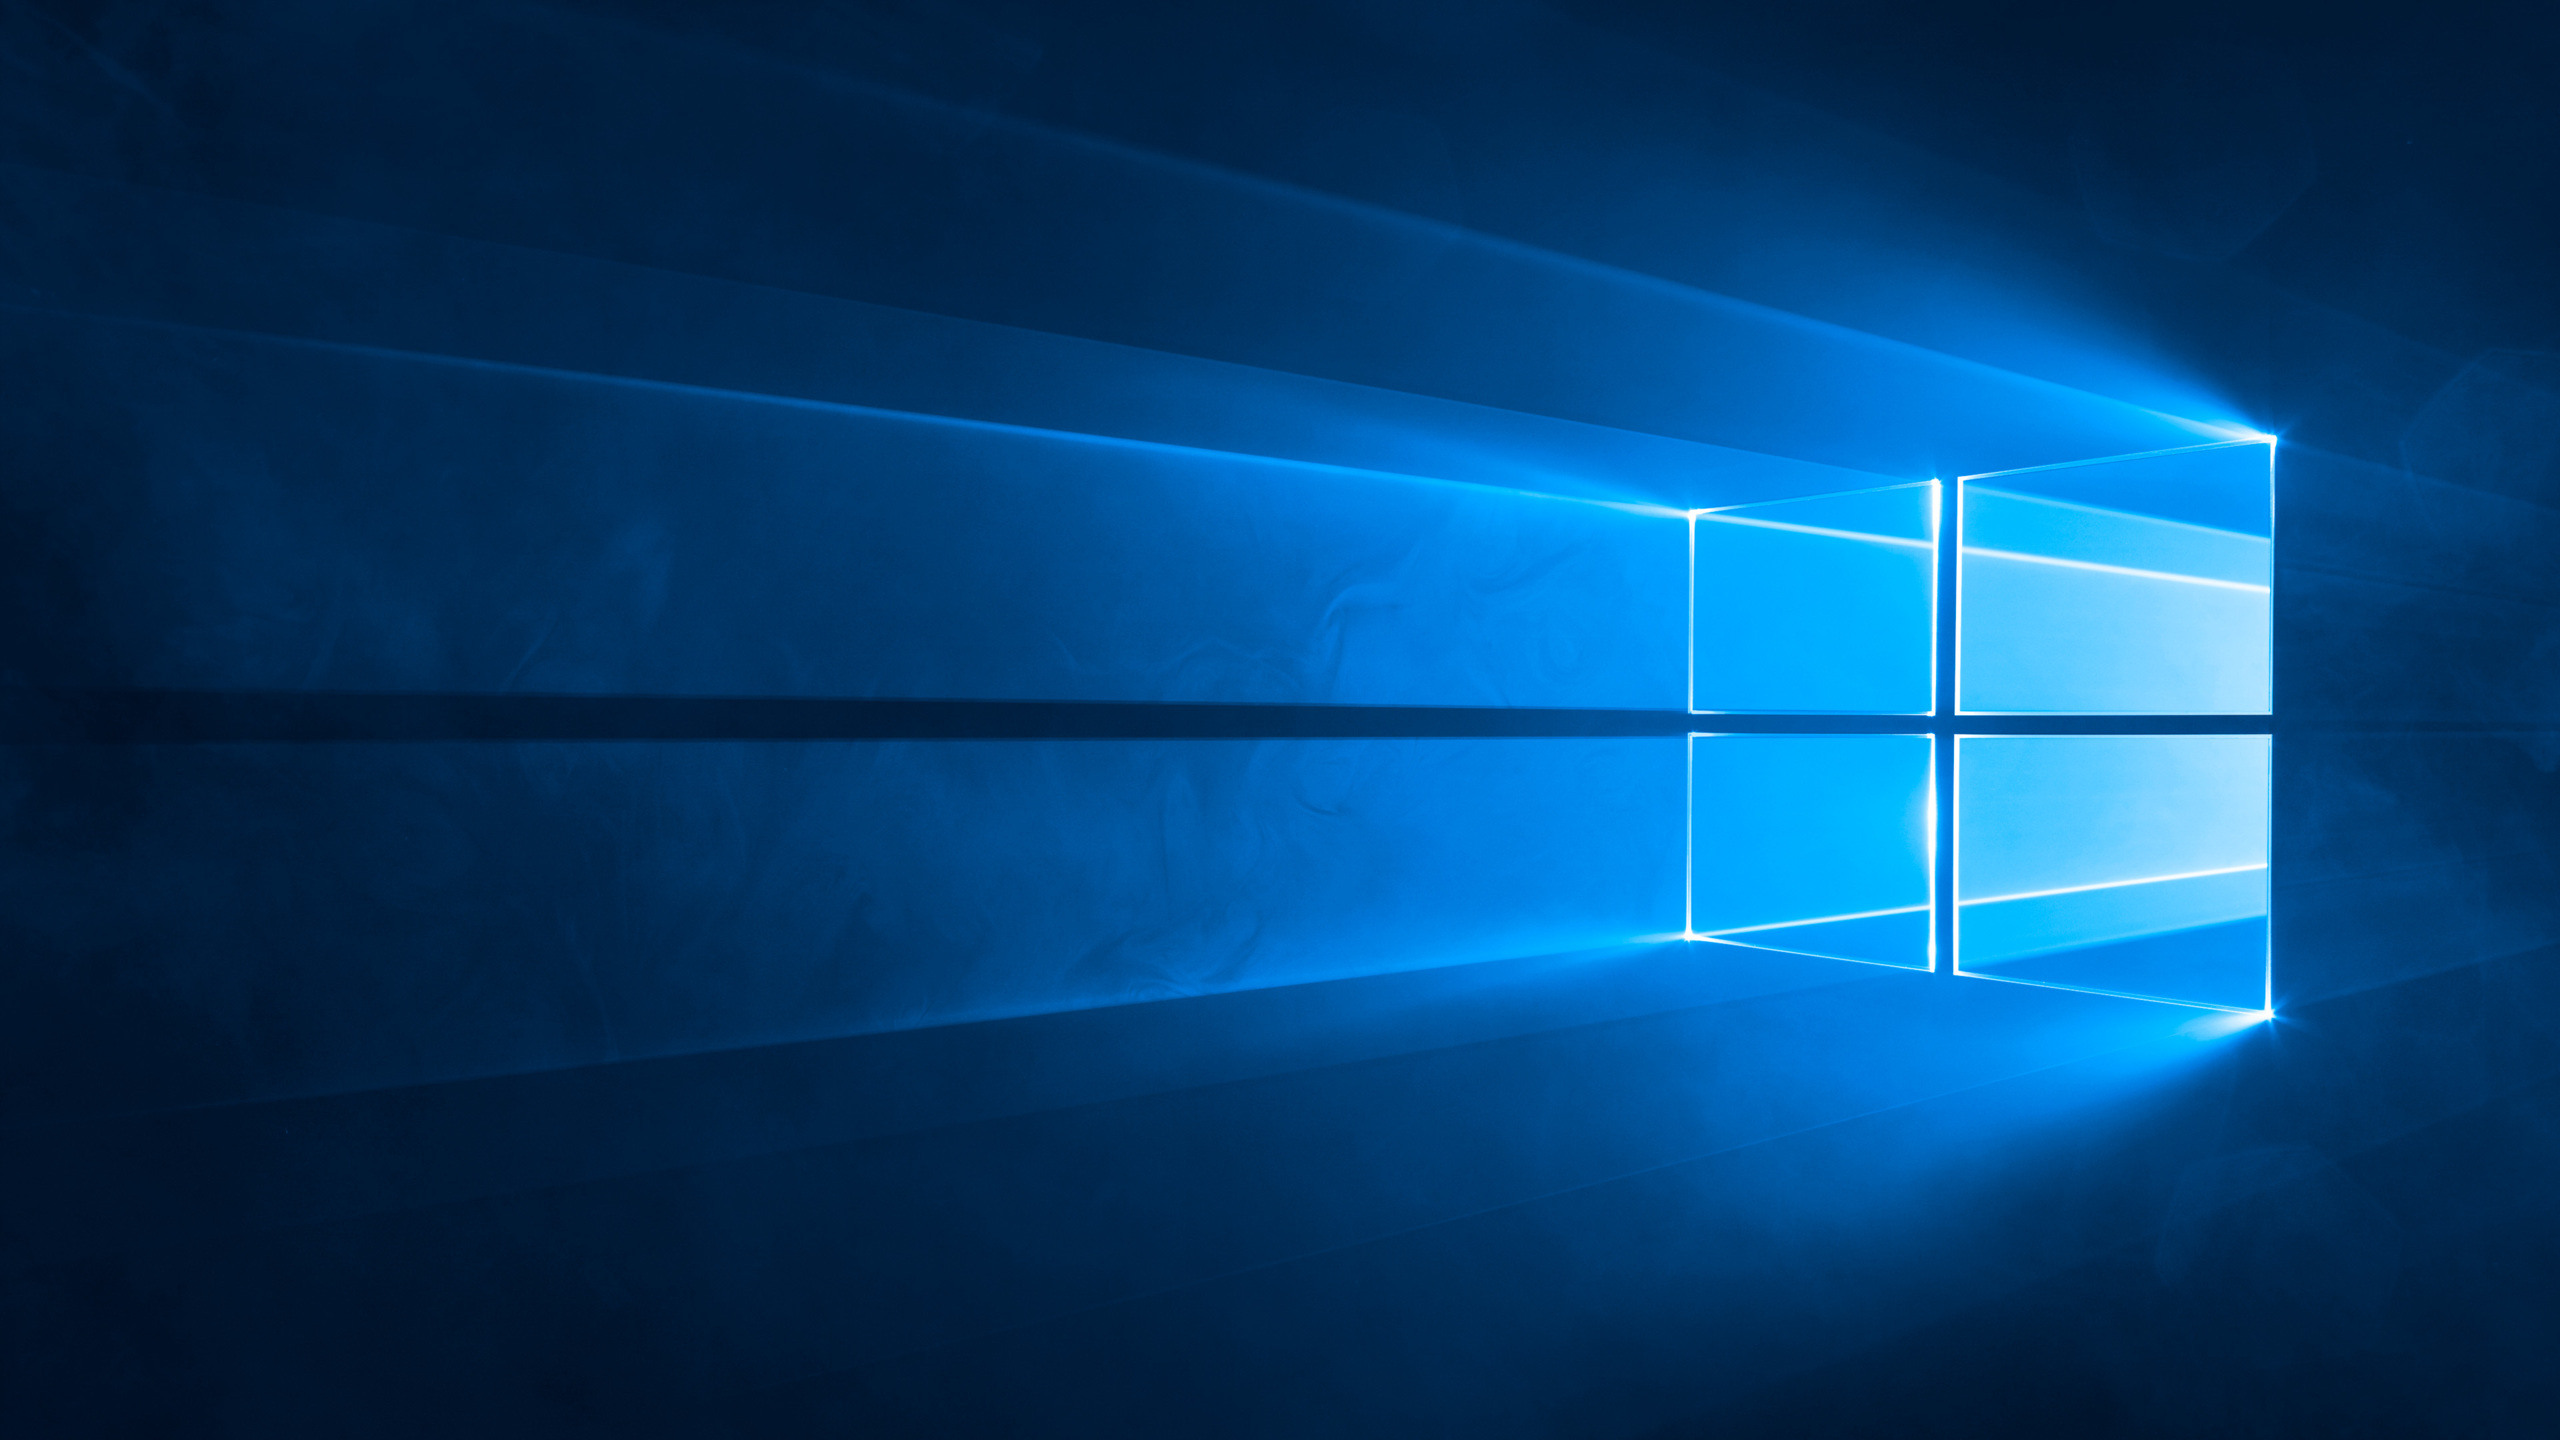 Foto de fondos de pantalla de windows 10 1 24 for 1 window